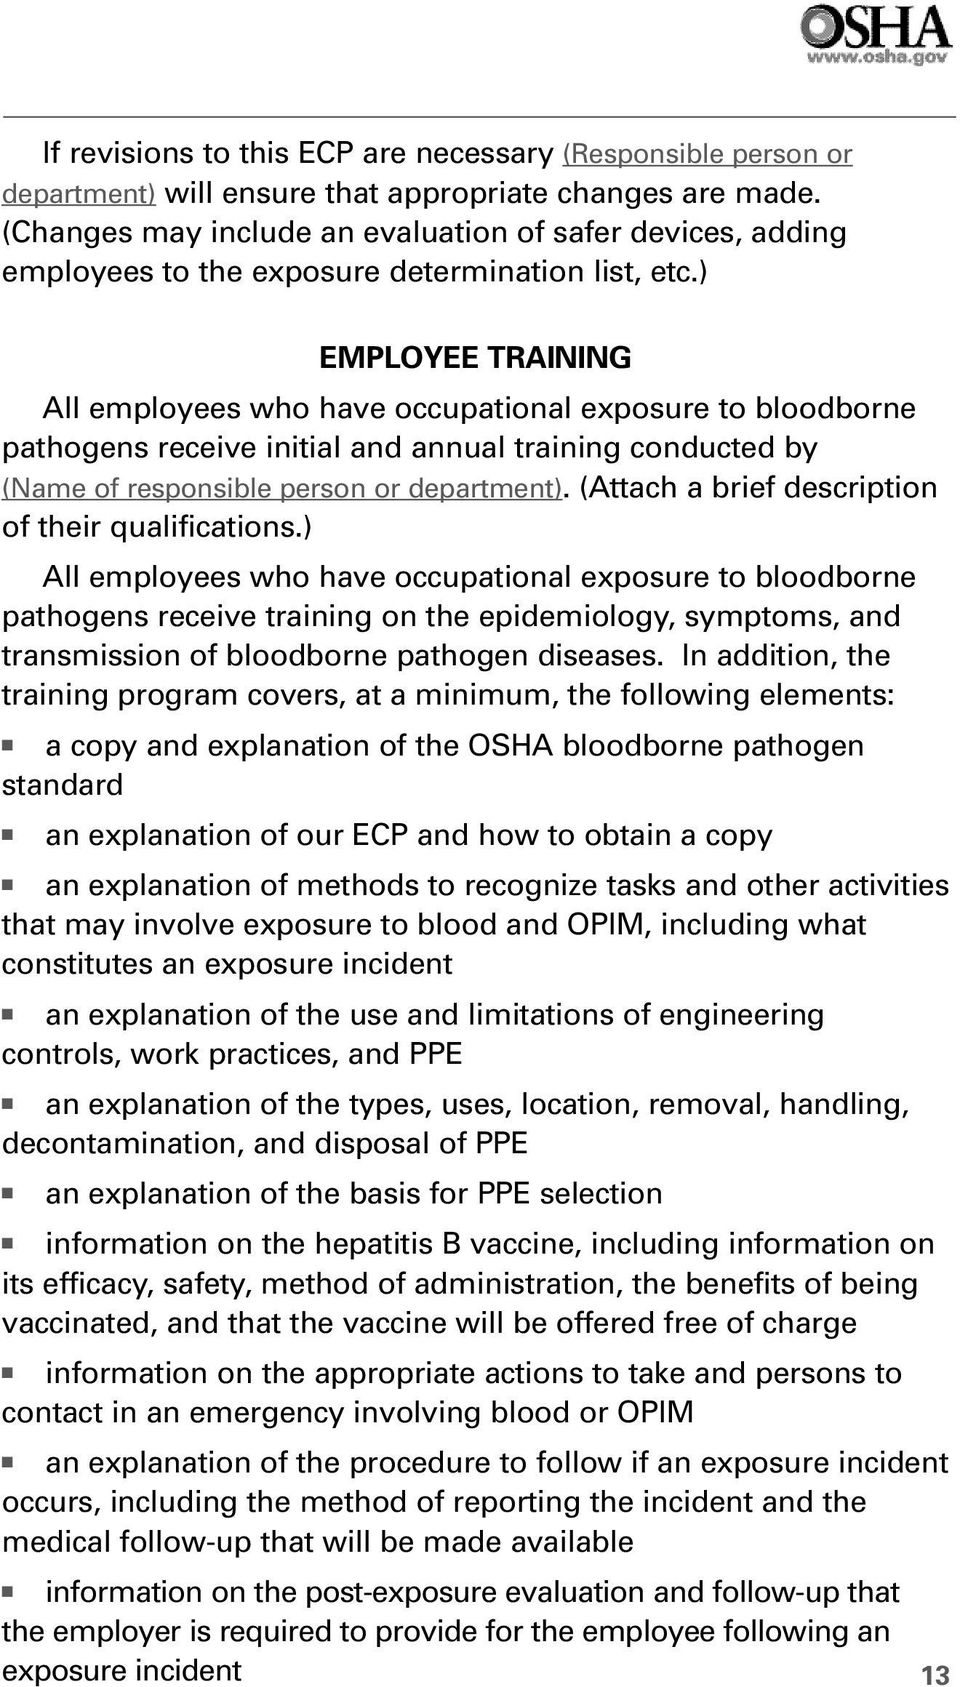 ) EMPLOYEE TRAINING All employees who have occupational exposure to bloodborne pathogens receive initial and annual training conducted by (Name of responsible person or department).